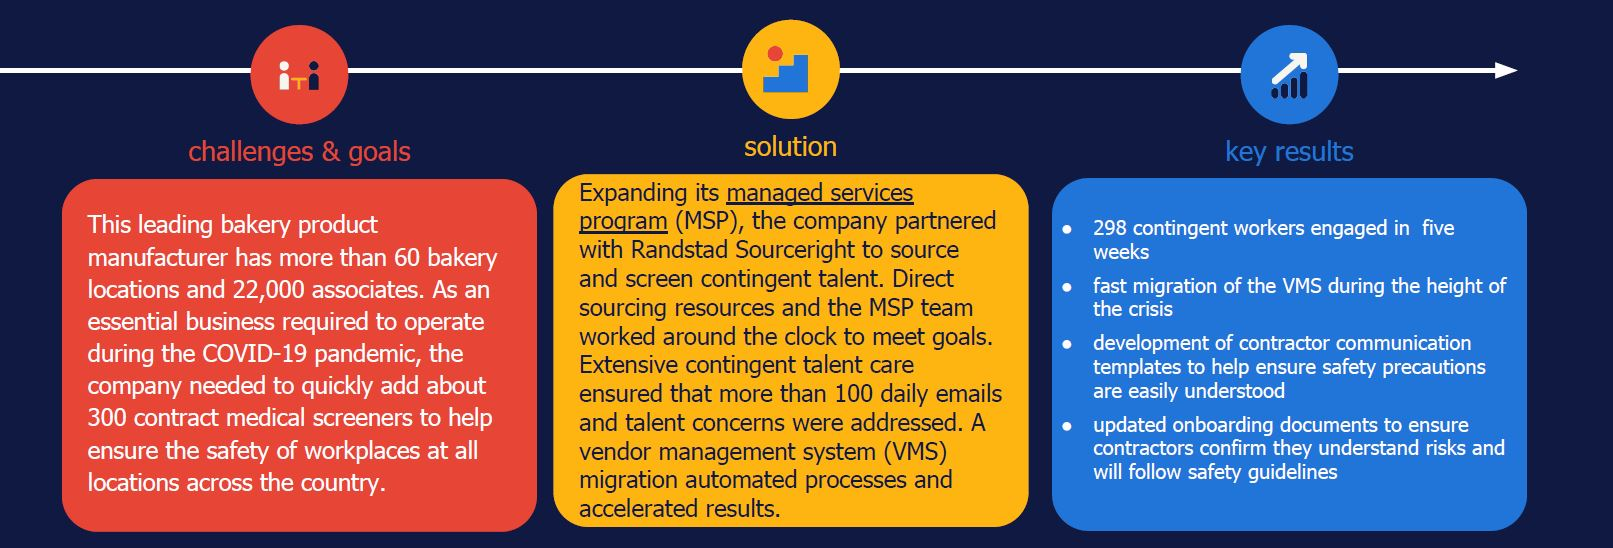 Randstad Sourceright MSP case study COVID-19 direct sourcing